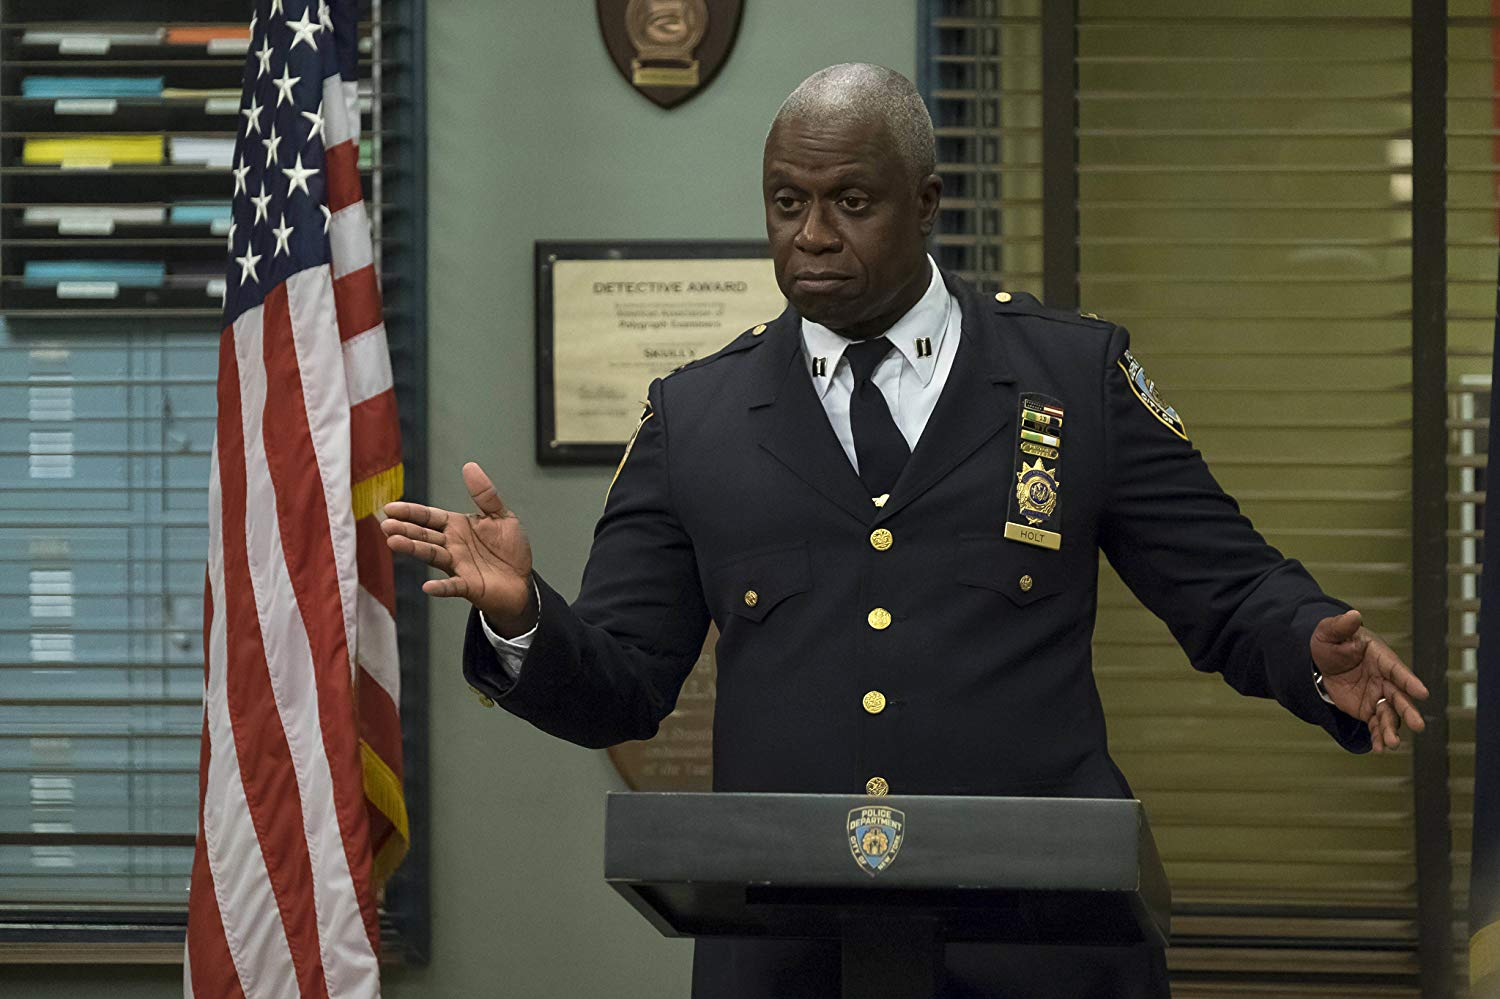 Brooklyn Nine-Nine - Season 6